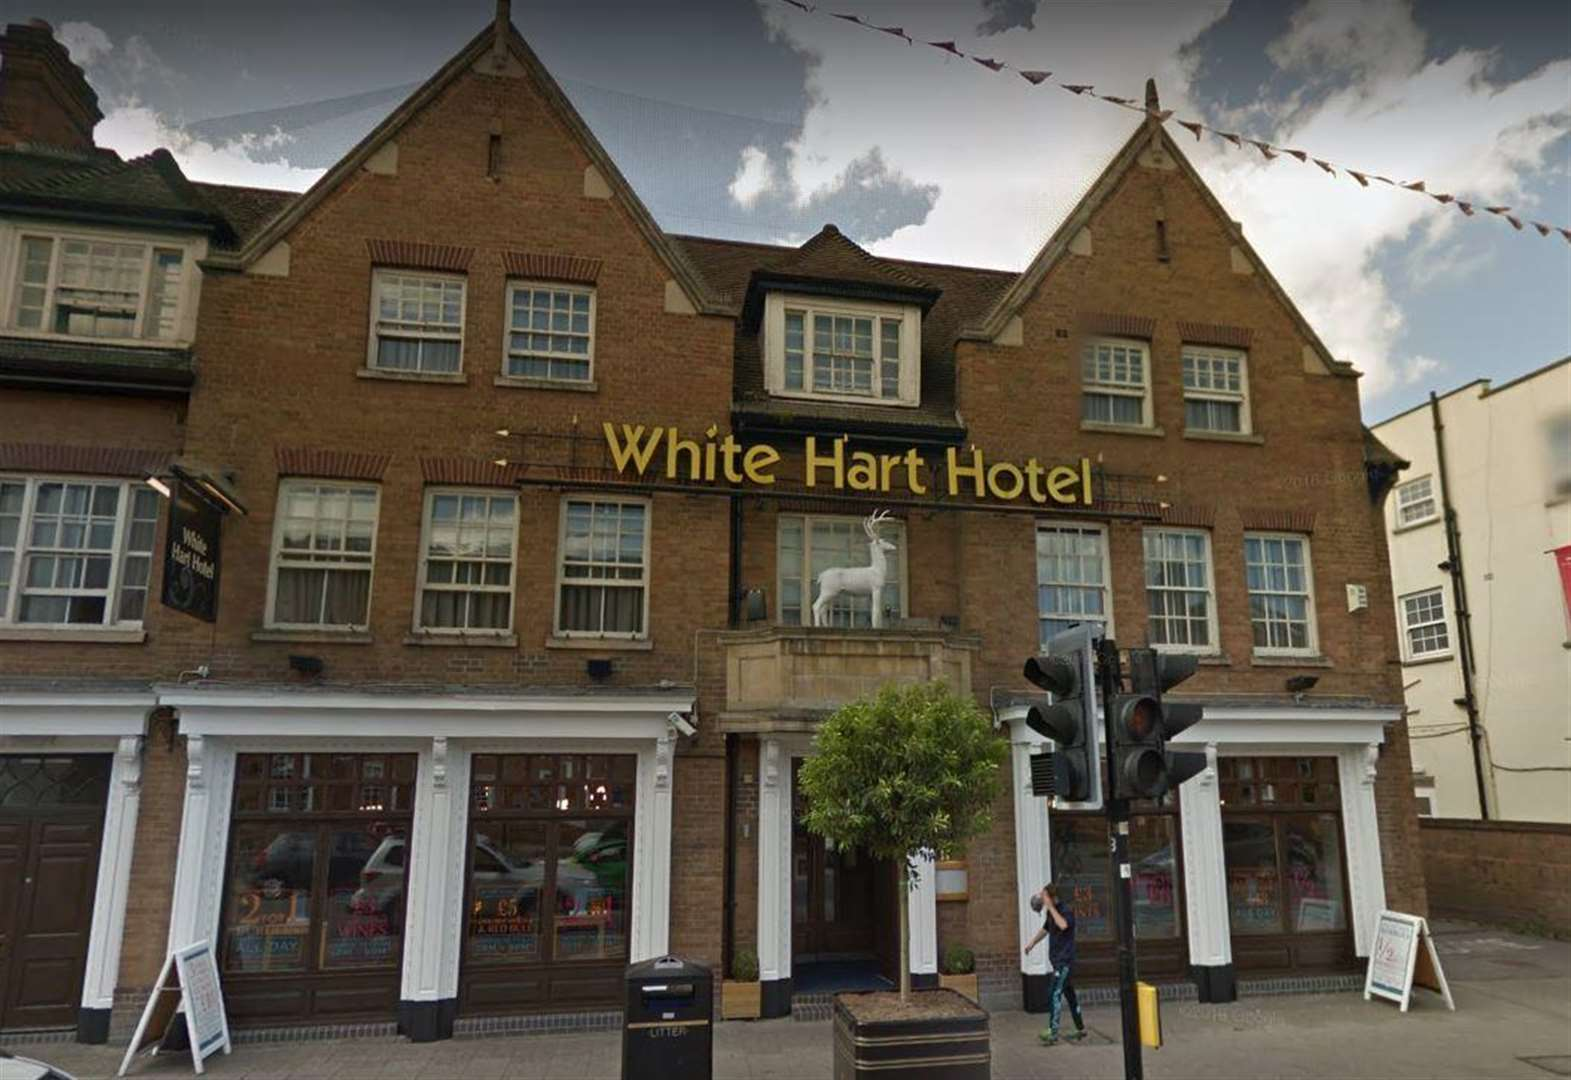 Man attacked in White Hart Hotel